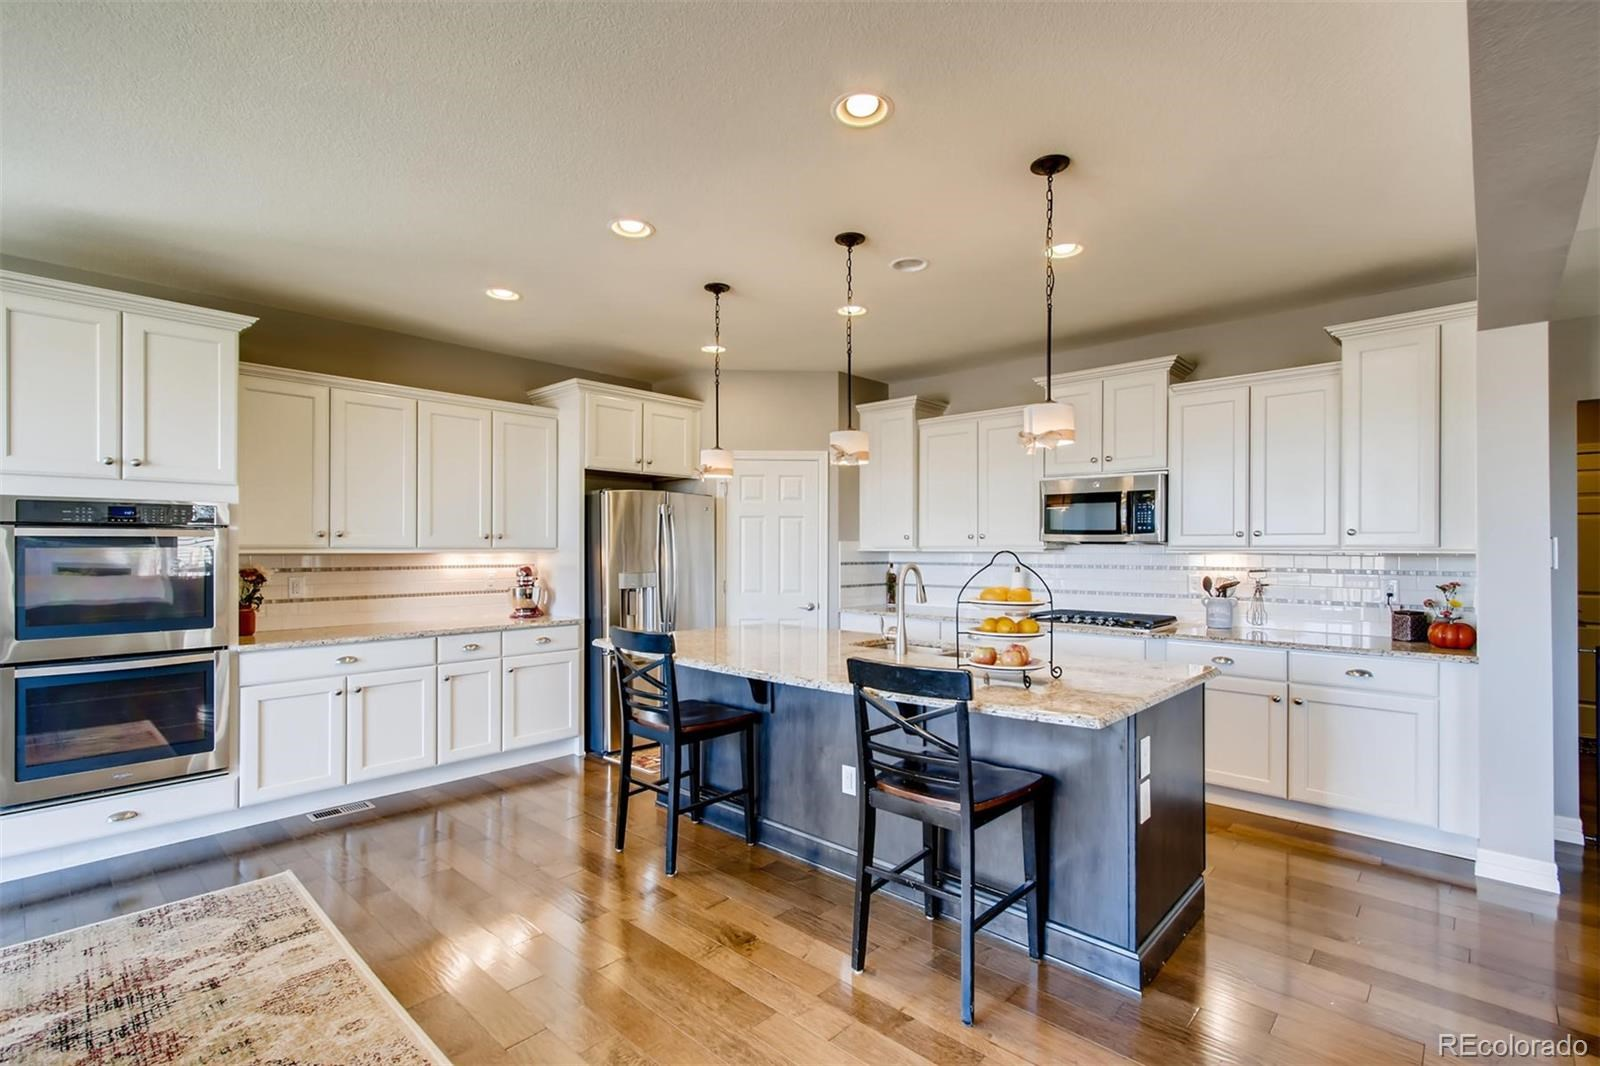 MLS# 8727284 - 8 - 15429 W 95th Place, Arvada, CO 80007